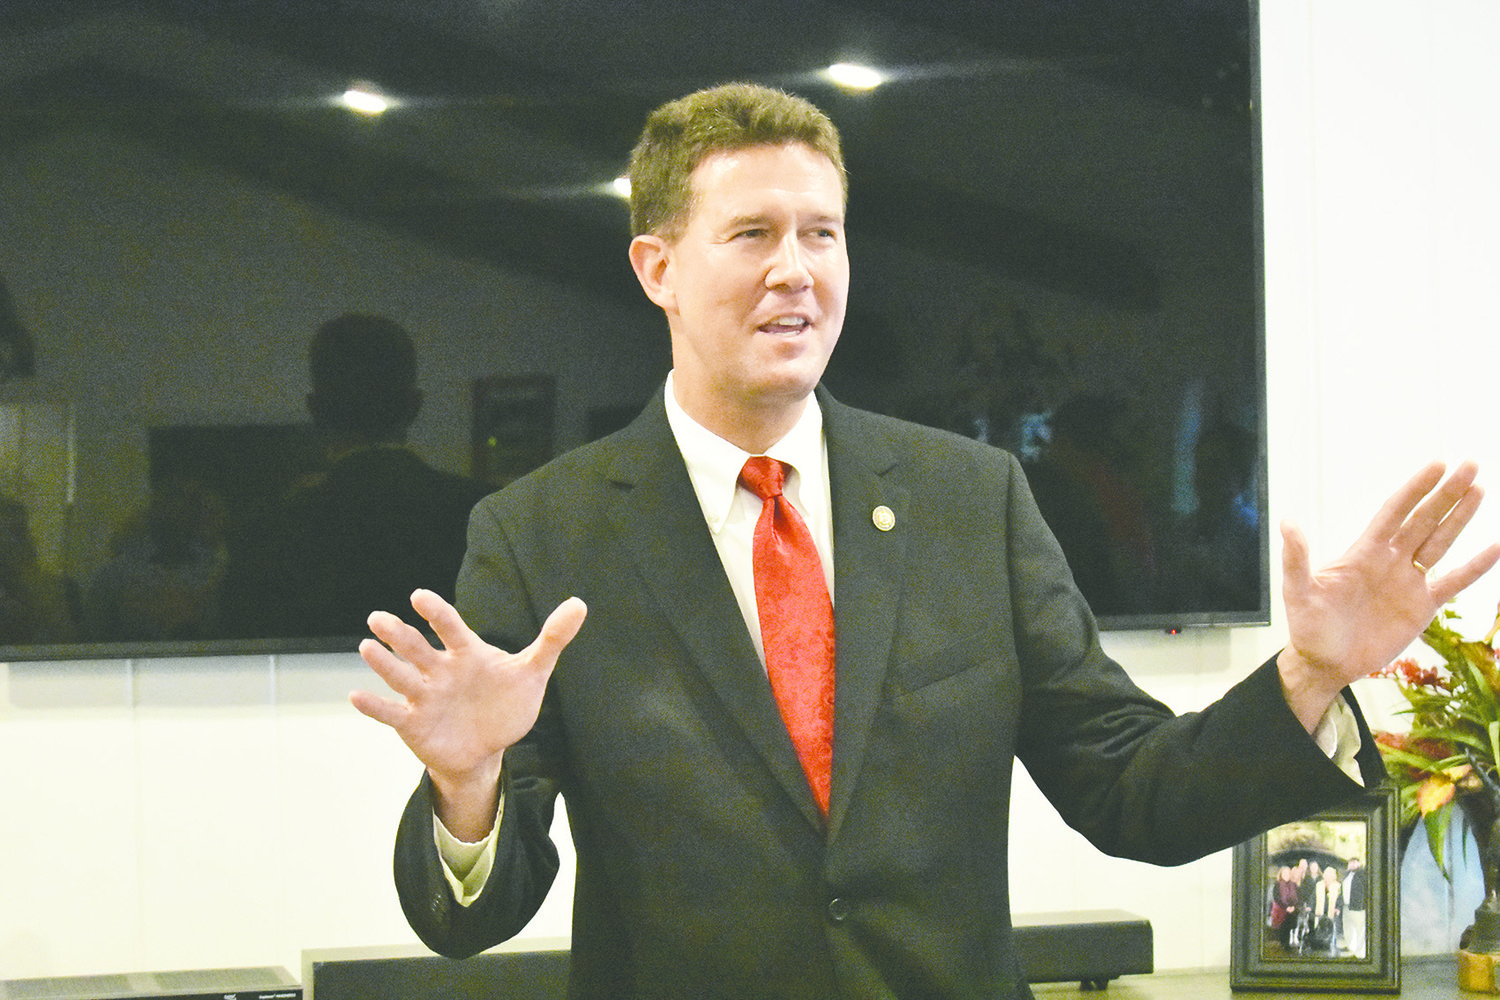 Secretary of State John Merrill speaks at a Jasper residence which hosted a campaign meet-and-greet for Merrill on Monday night.